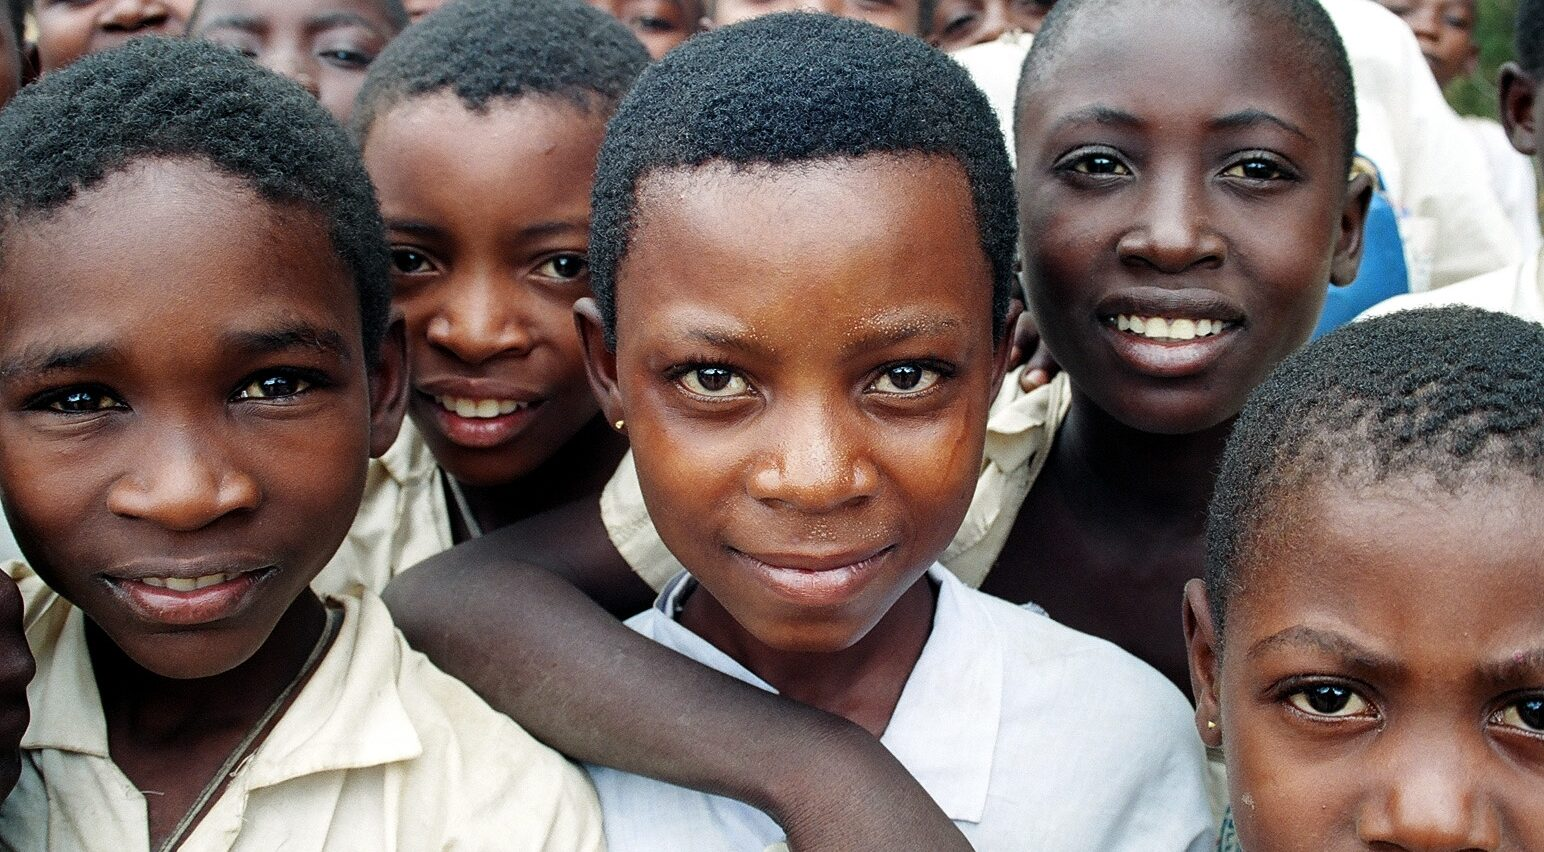 Children in Tanzania